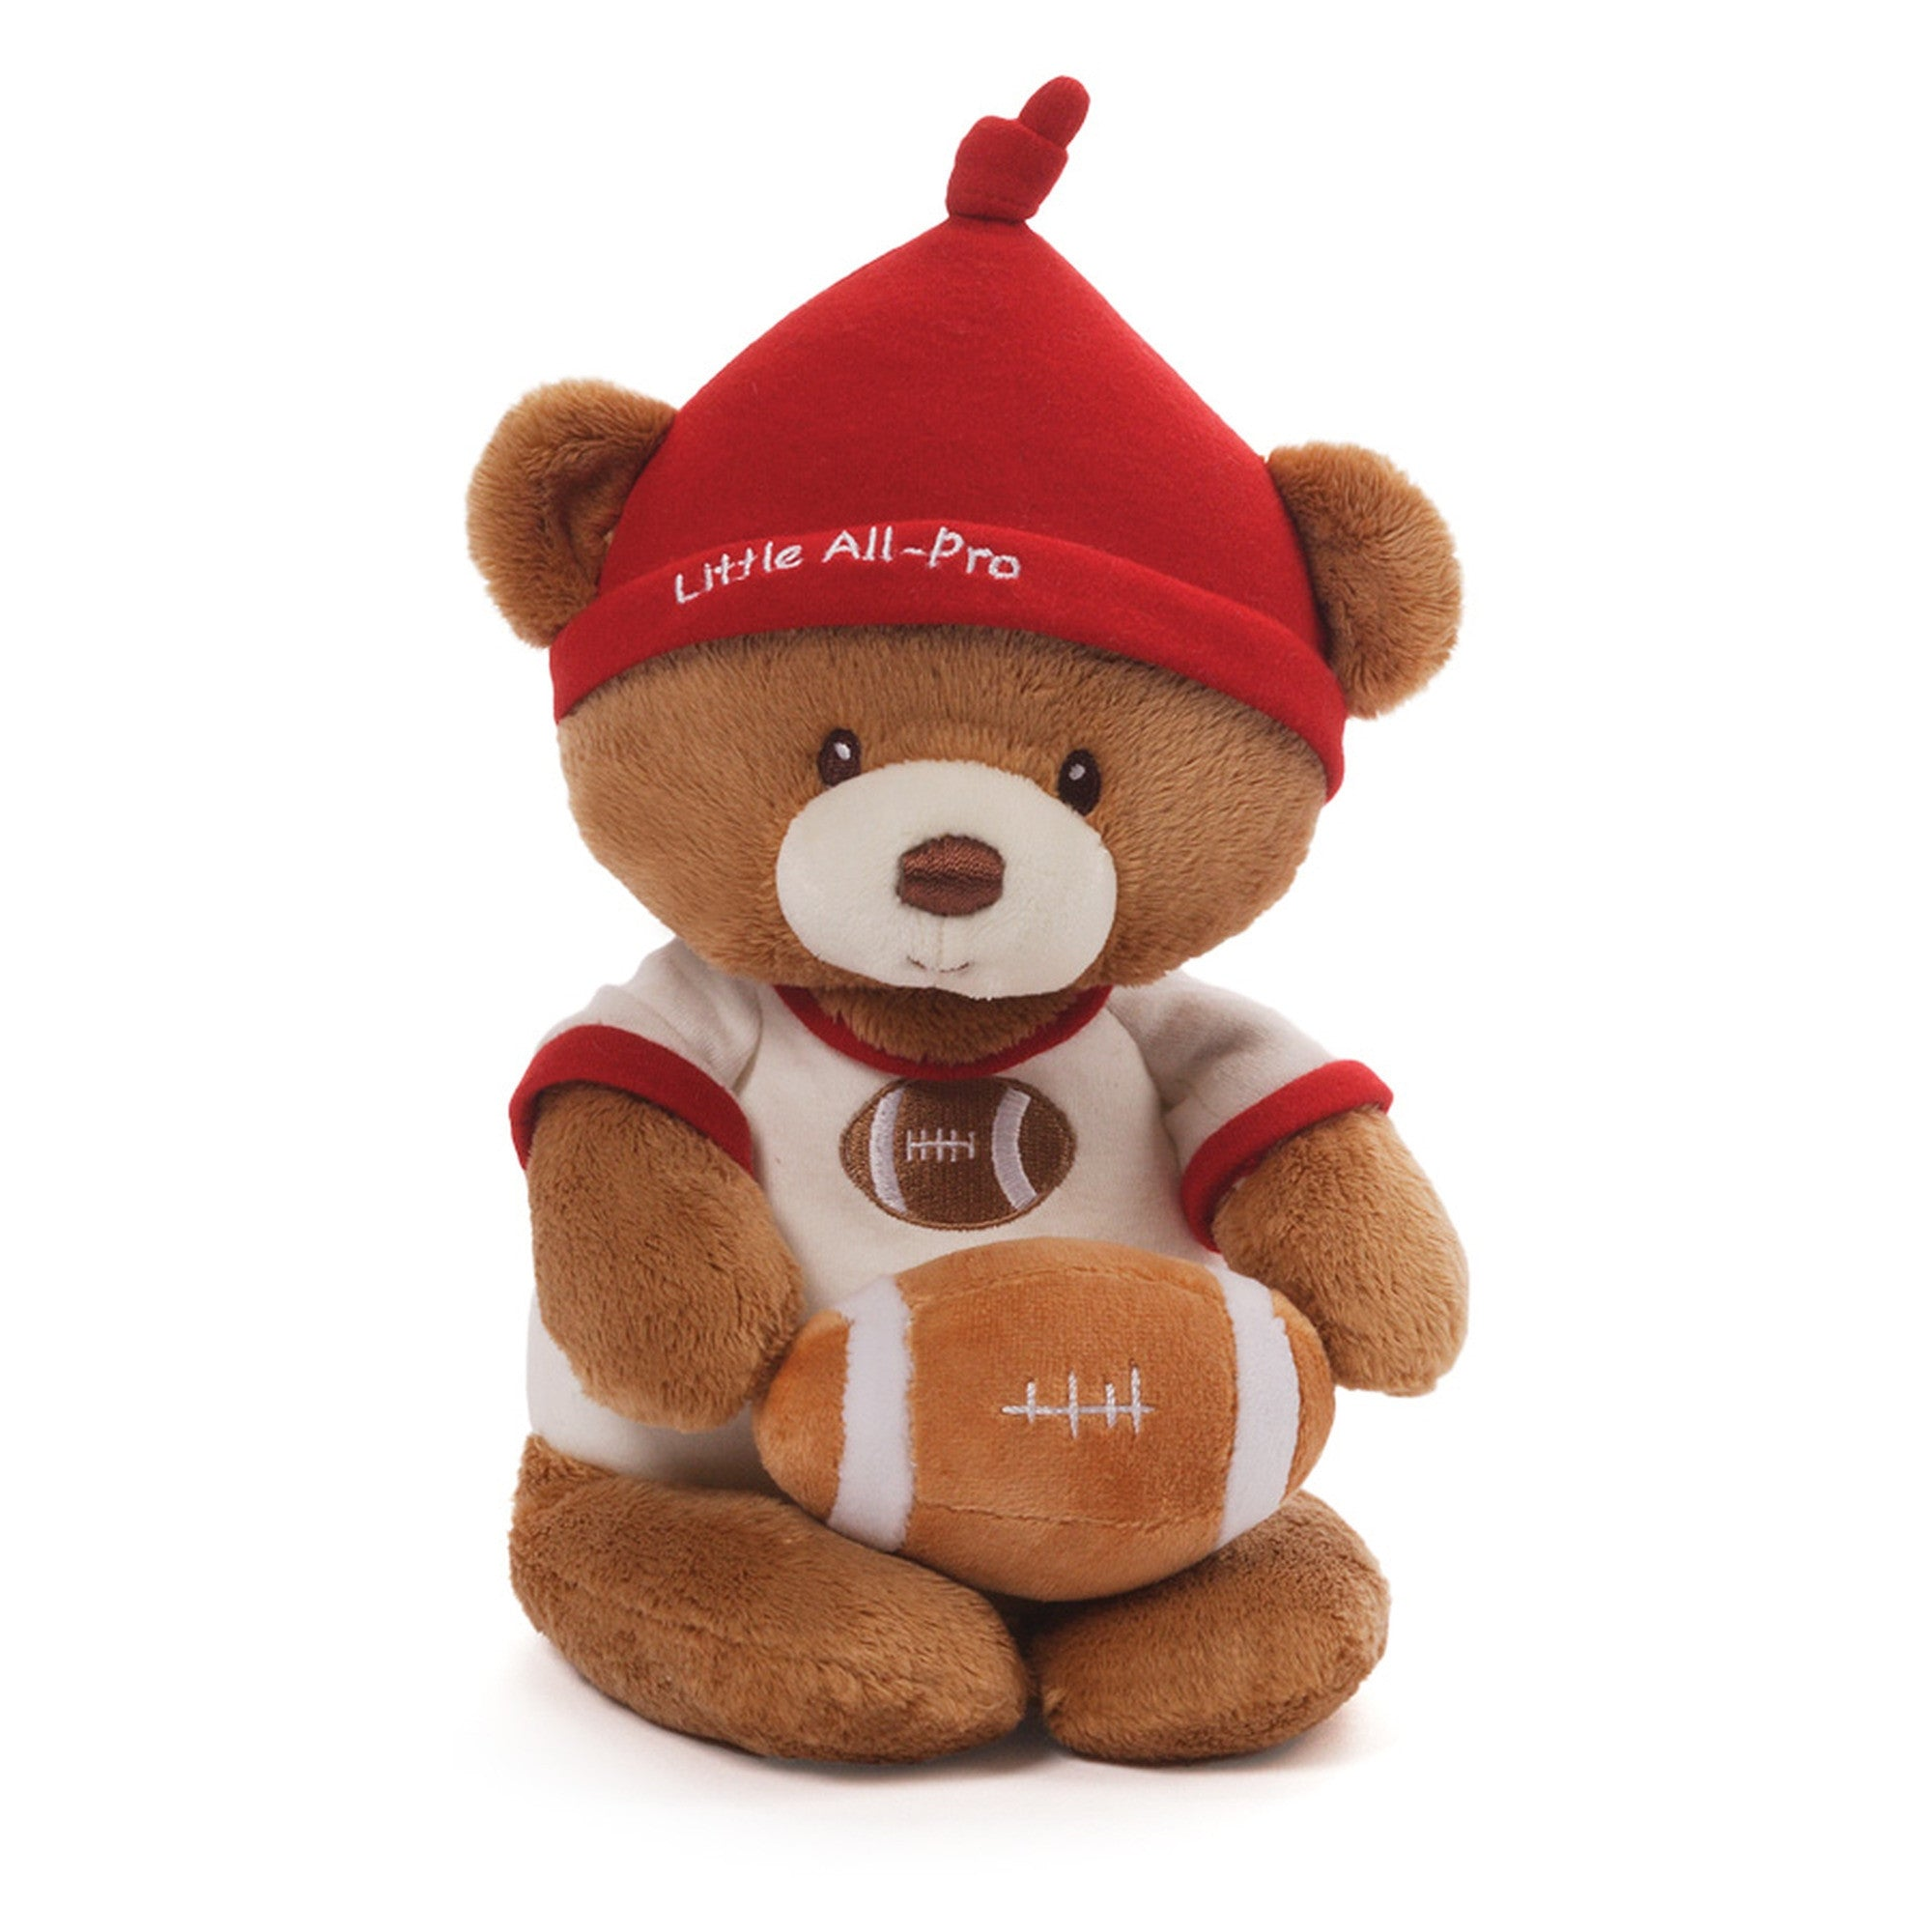 Baby Gund - Little All Pro Football Bear - 12""